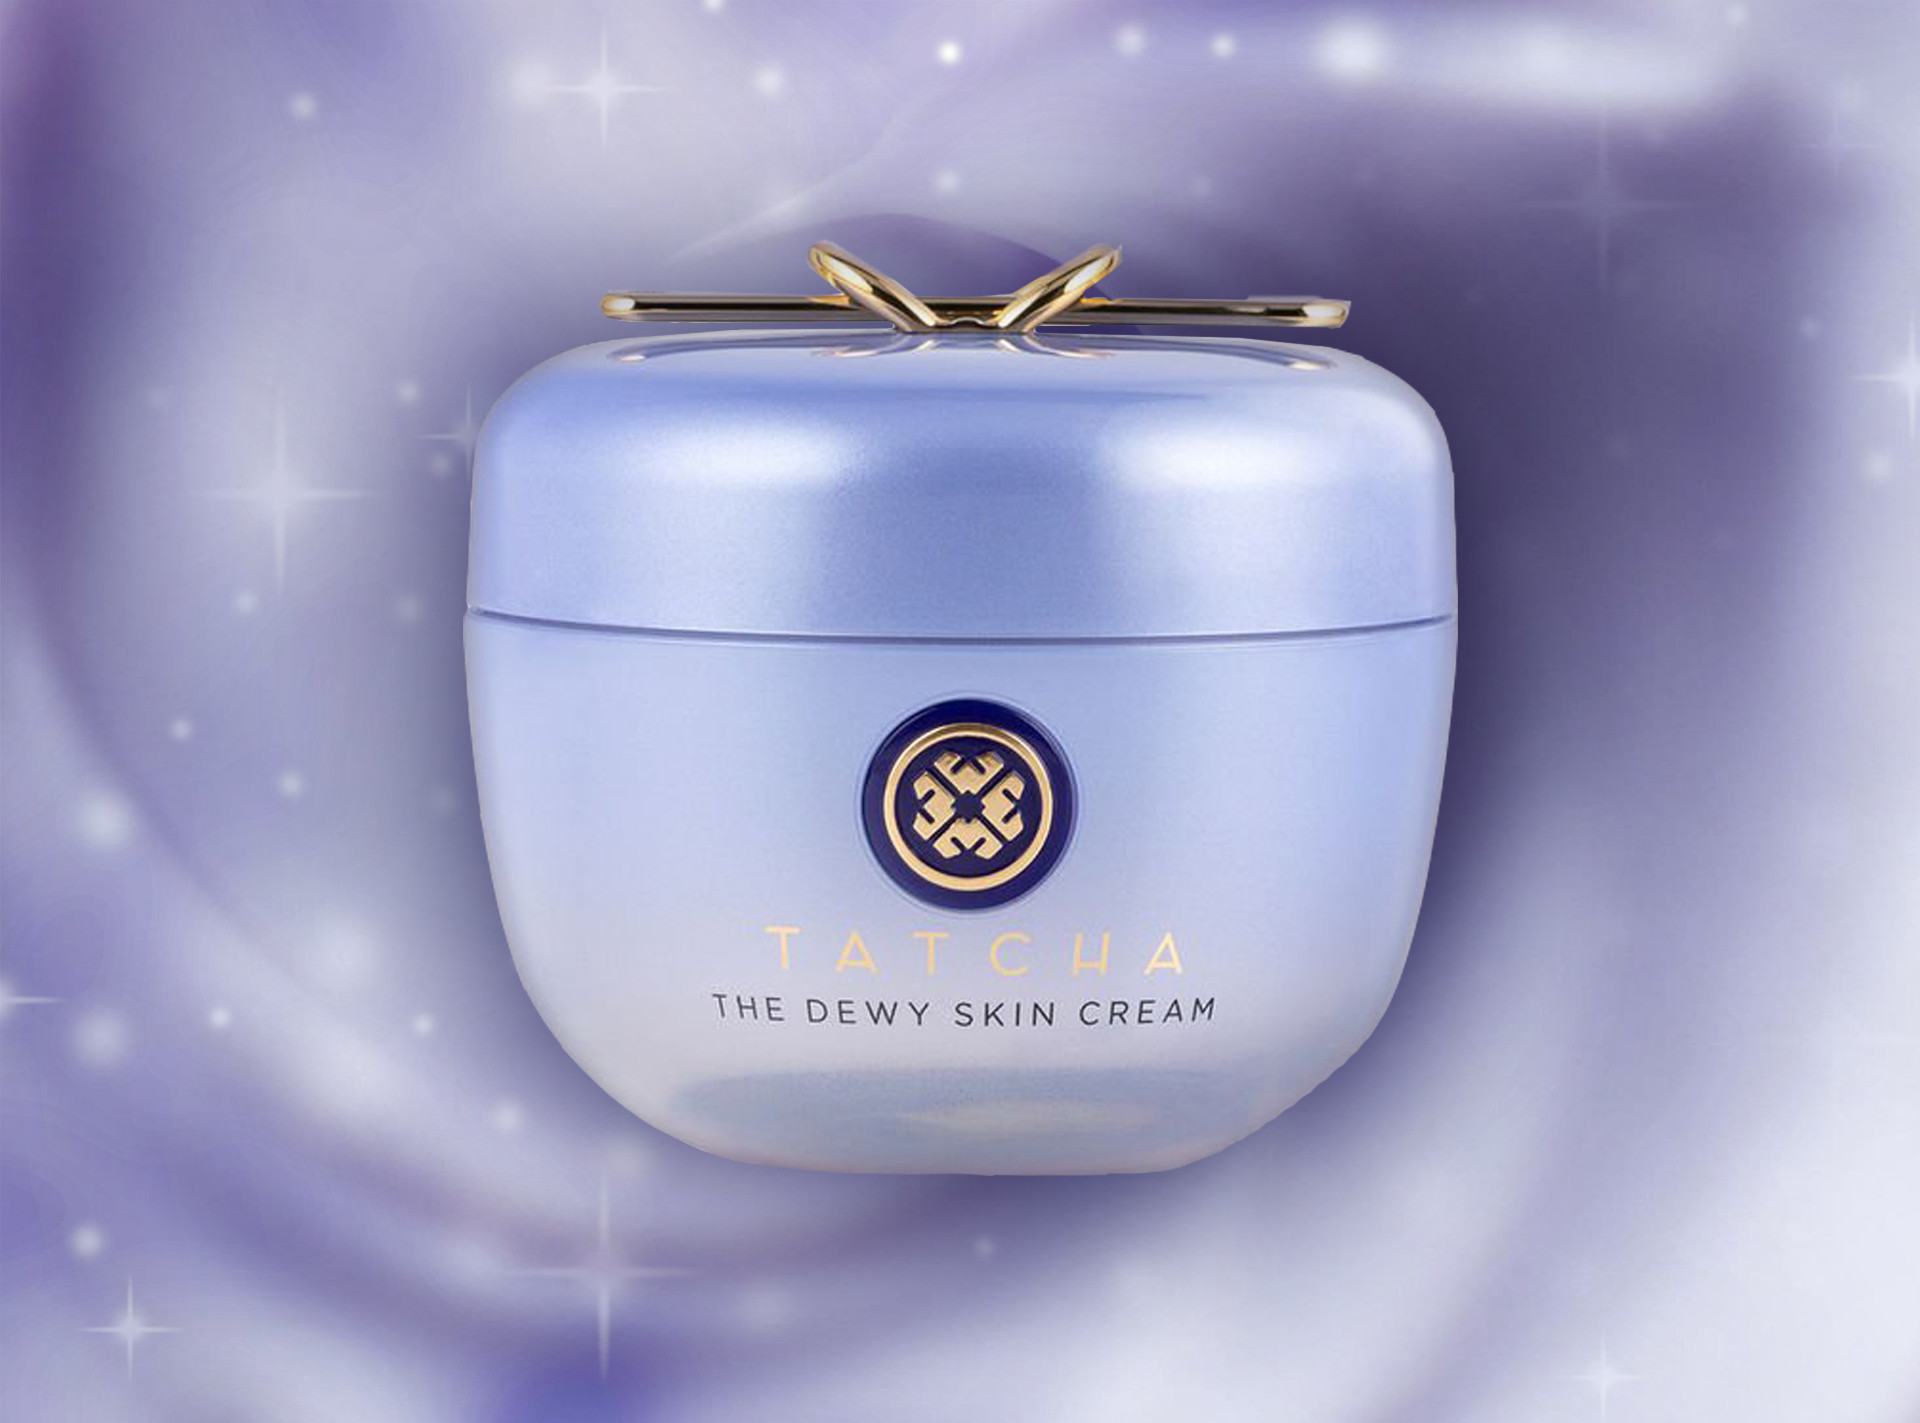 Tatcha's New Dewy Skin Cream Is an Instagram Filter IRL